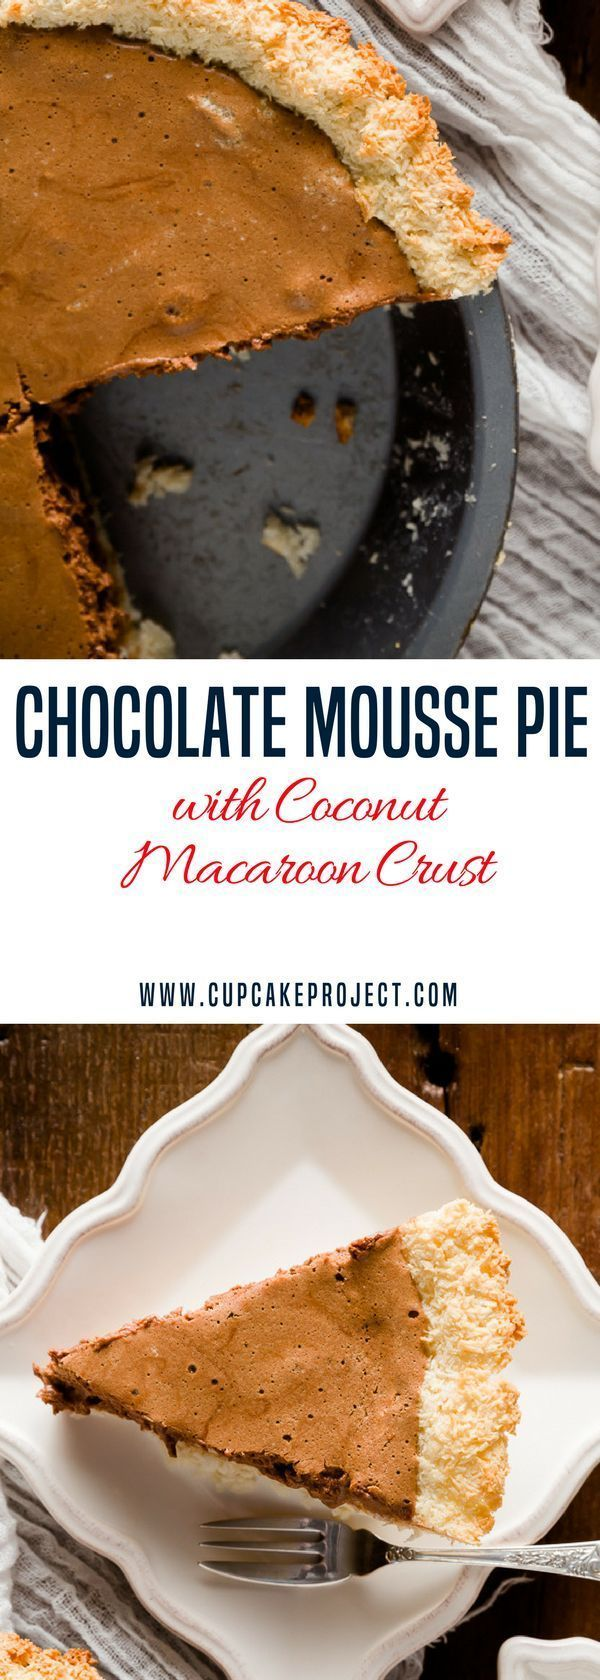 Chocolate Mousse Pie with Coconut Macaroon Crust Chocolate Mousse Pie with Coconut Macaroon Crust